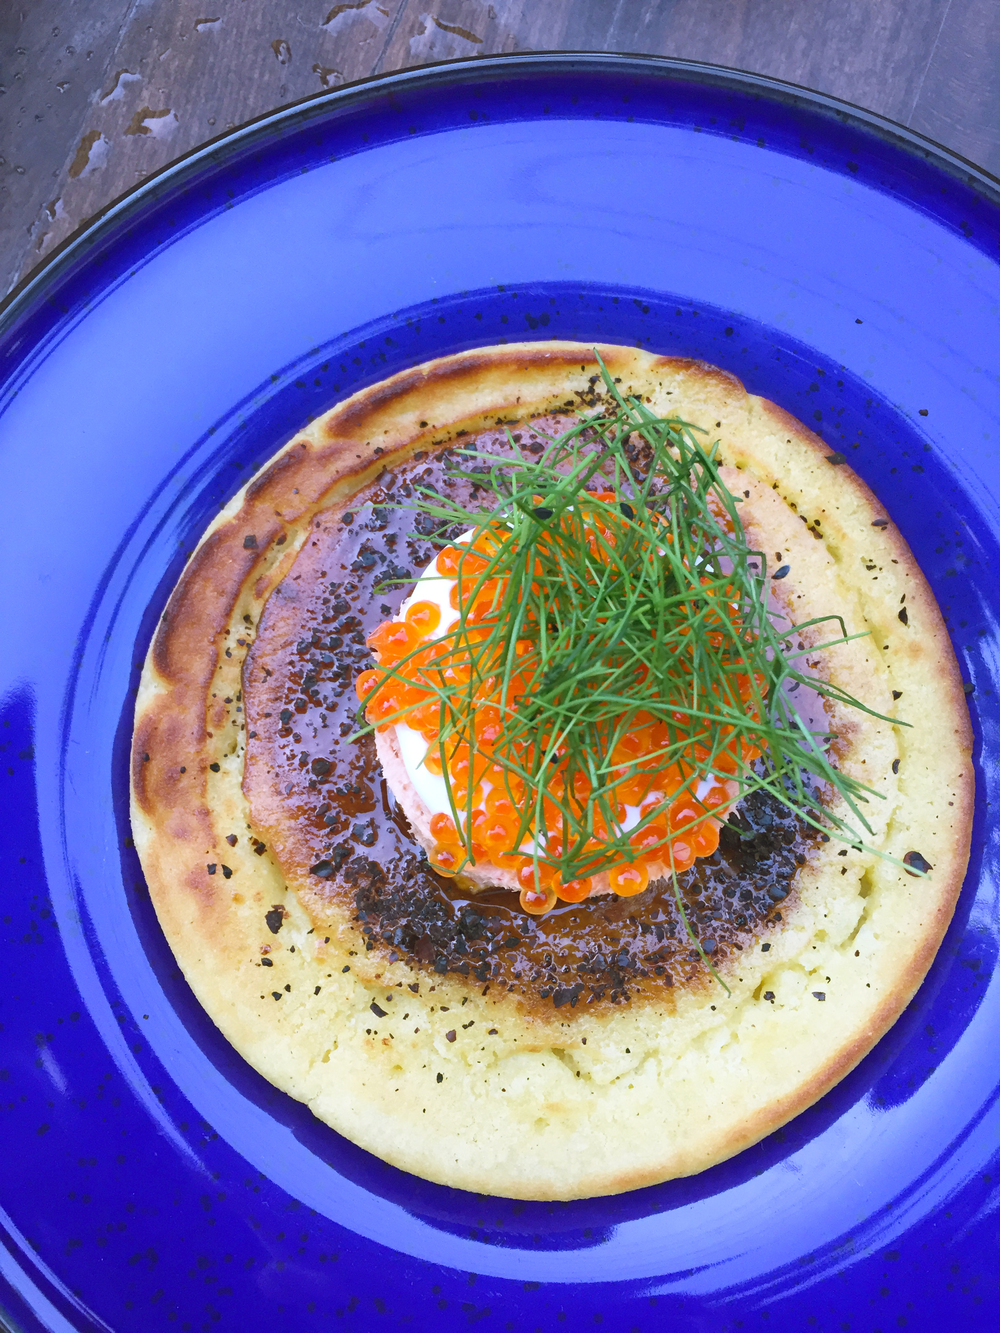 Smoked Arctic Char Rillettes with Trout Caviar, Hoecake, Meyer Lemon Crema, and Chives.